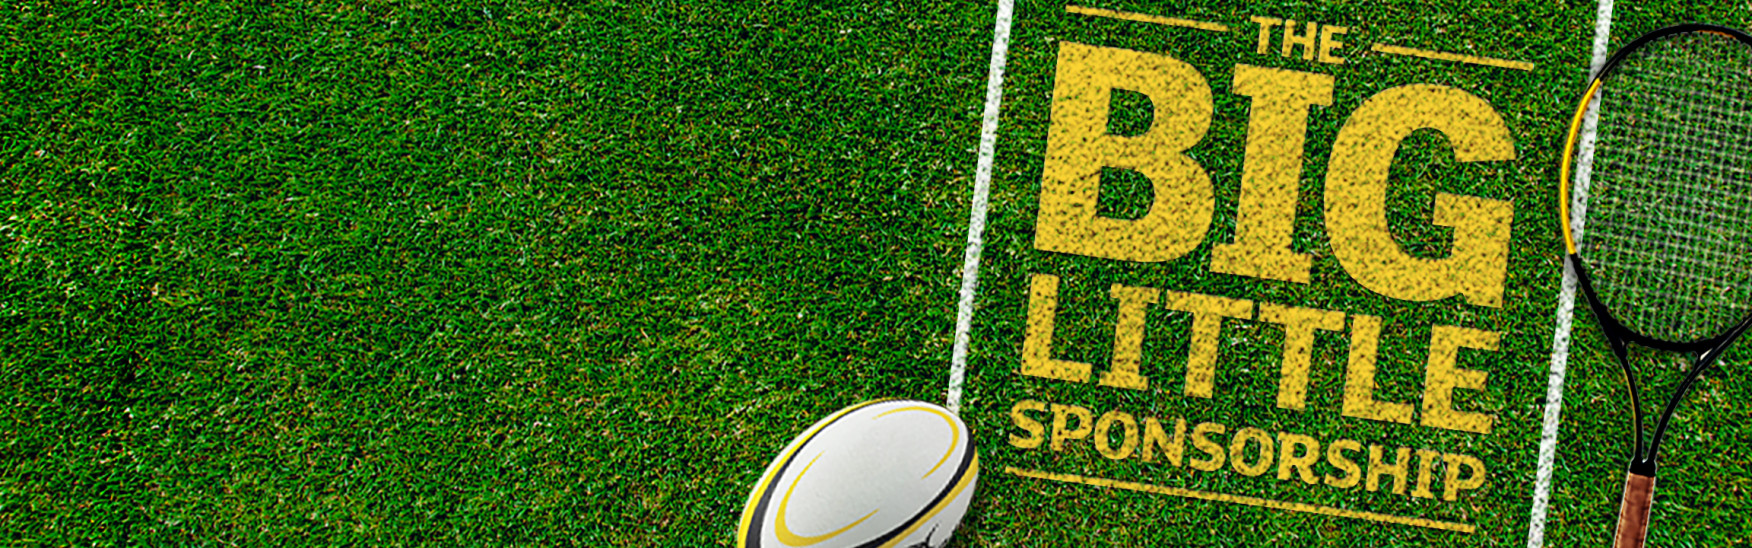 "Colour: a rugby ball and tennis racket on a grass field with ""win the Big Little Sponsorship"" on the right side, long shot"